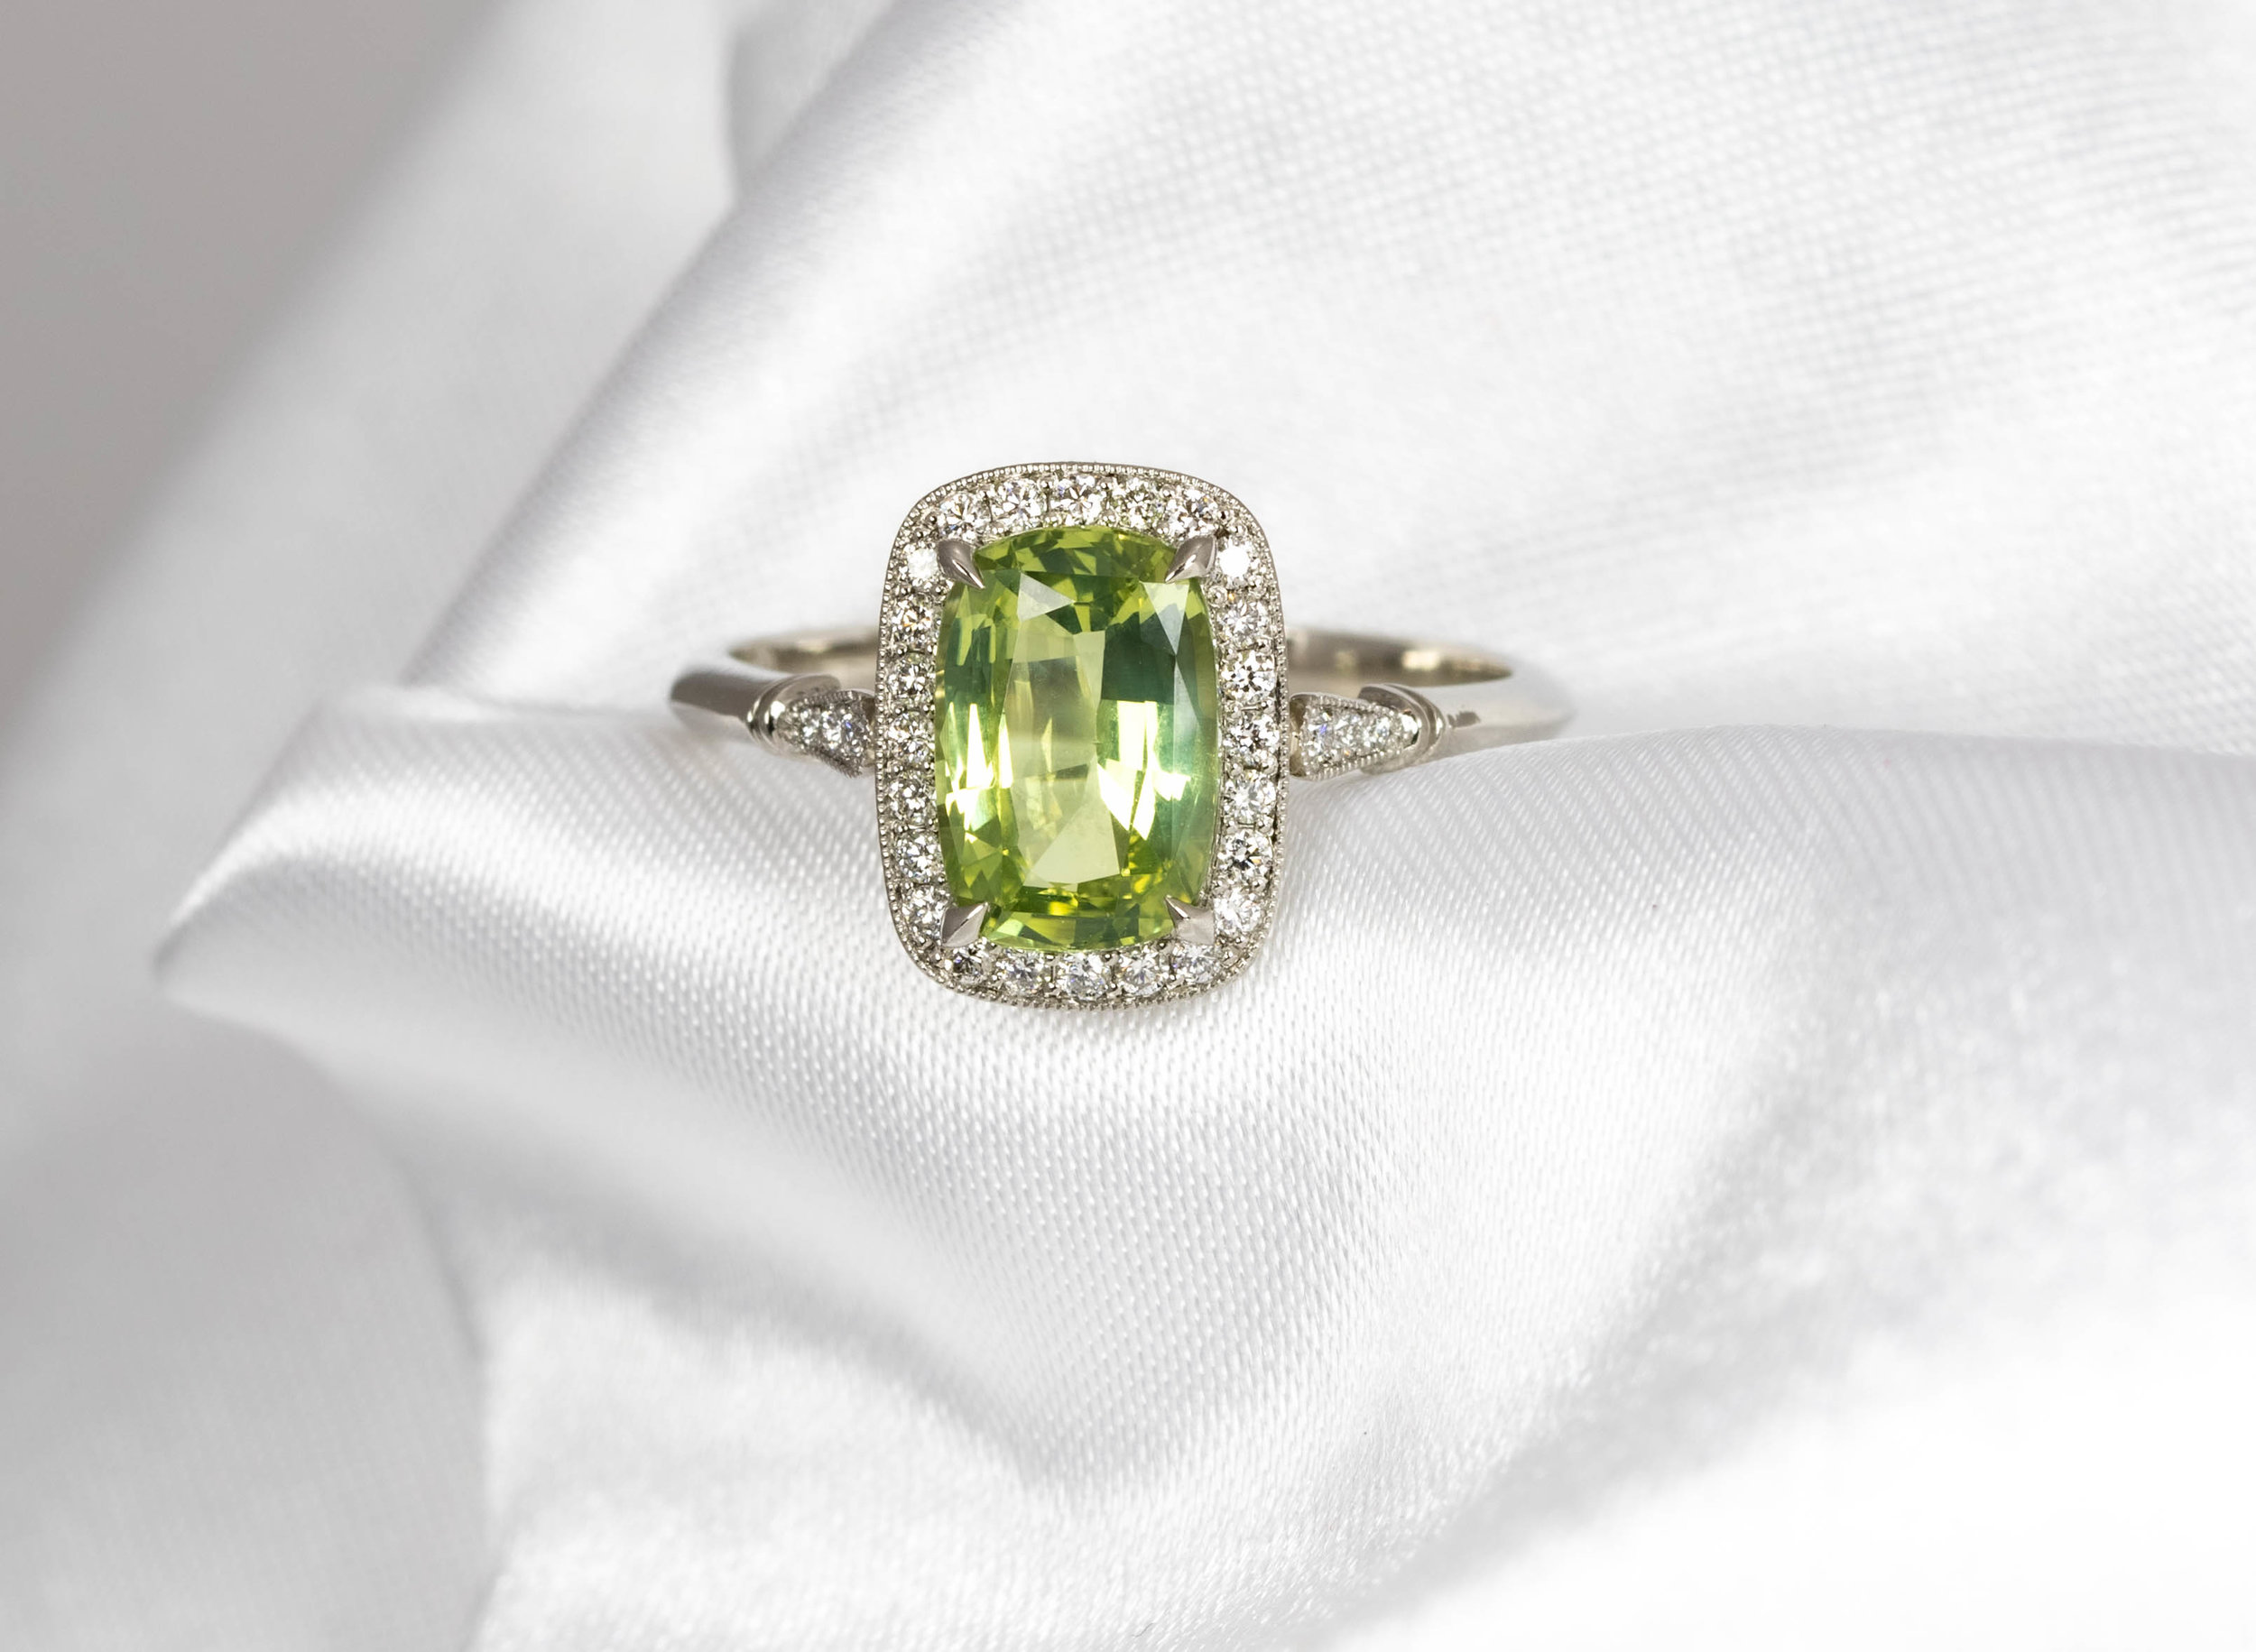 Platinum mounted 1.88ct oblong cushion cut Chrysoberyl and diamond cluster ring. Made in Chichester, England.